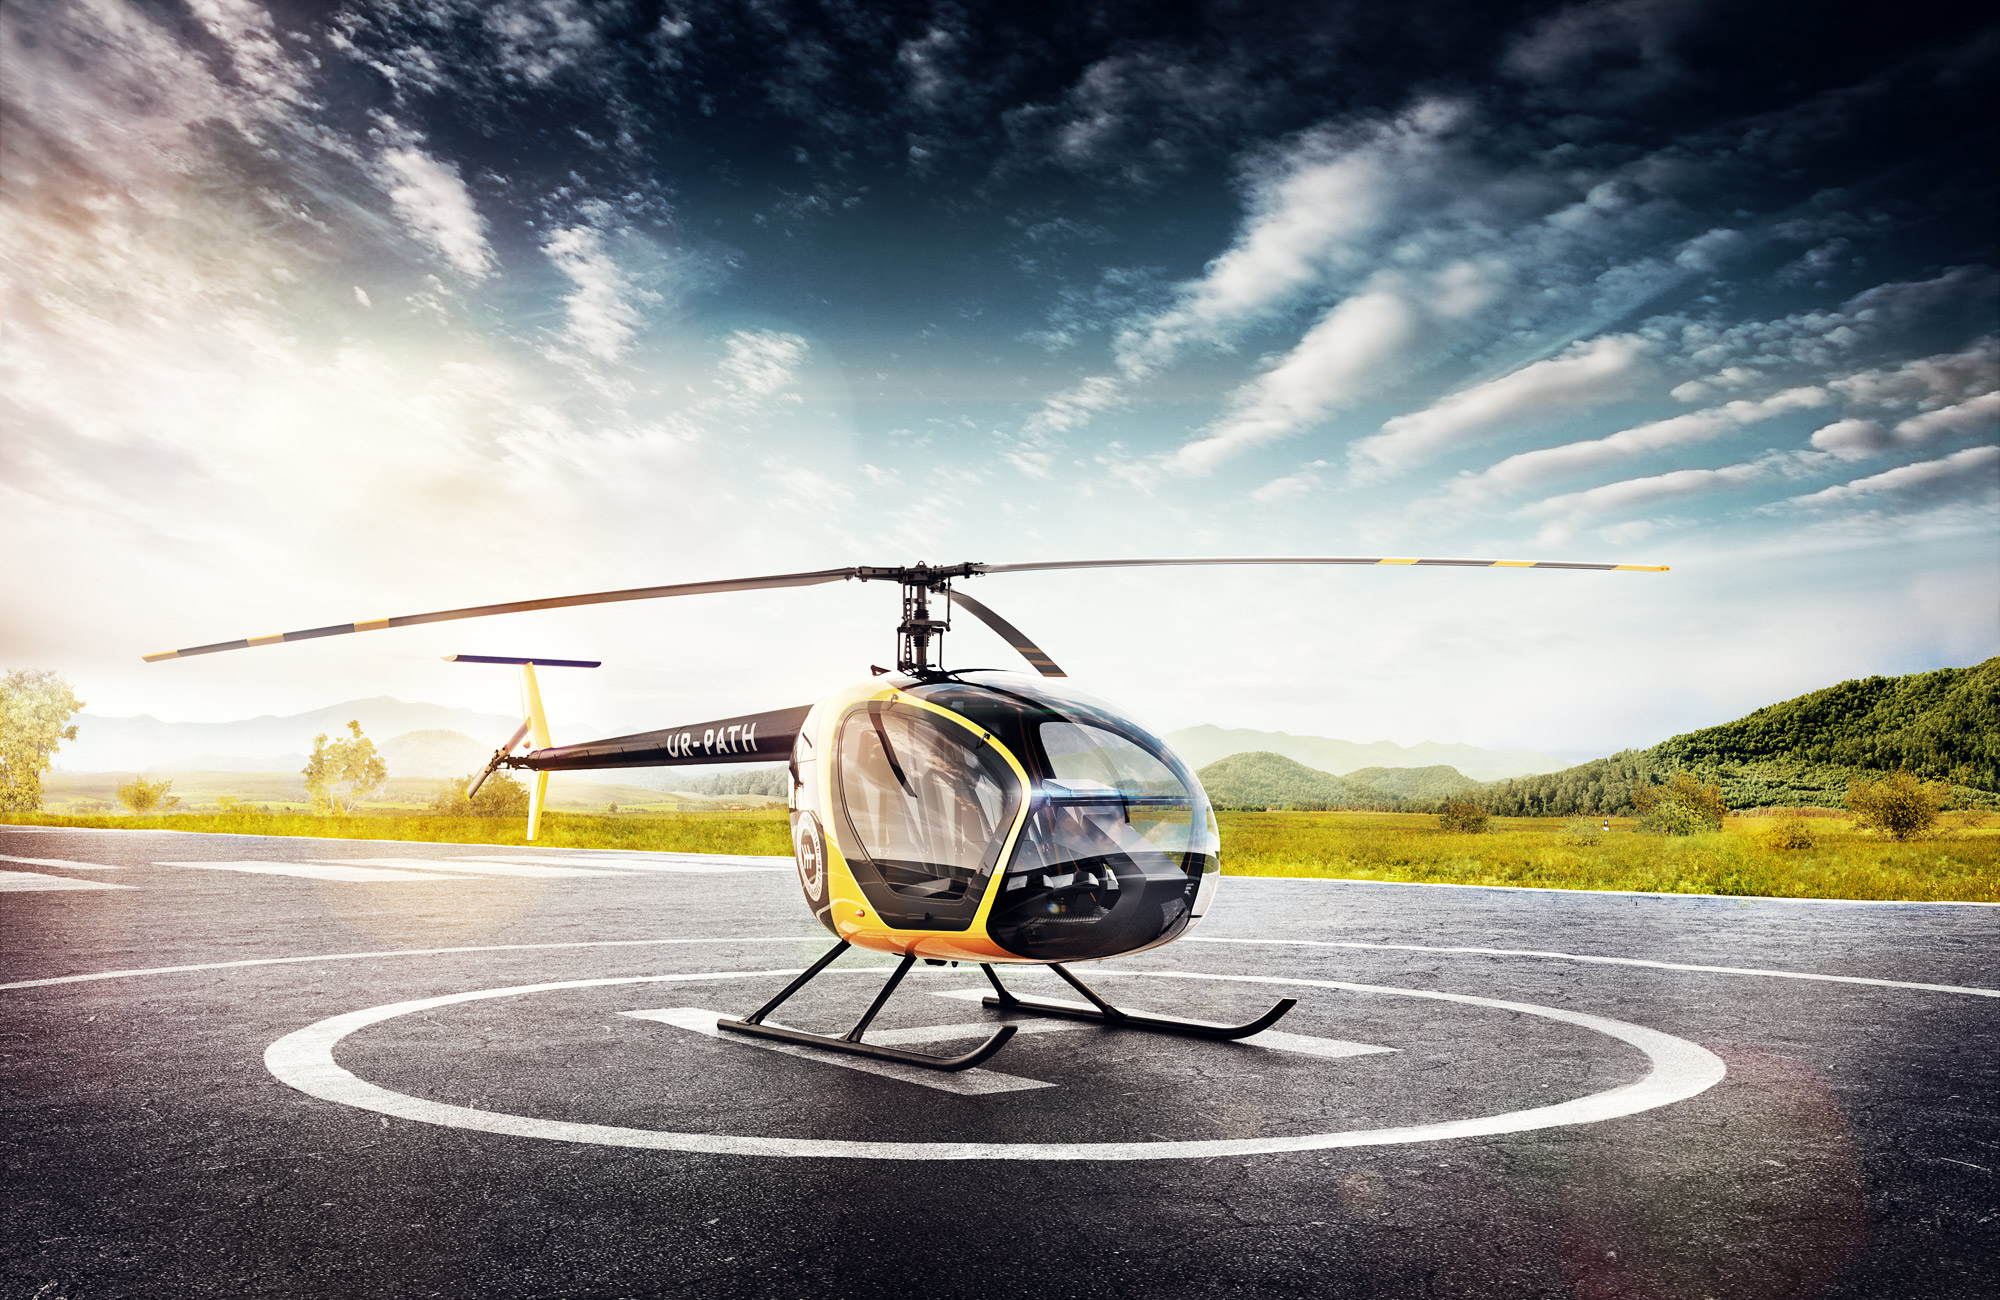 In 2015, the Studio designed the Scout helicopter. Then it was done by a big team.